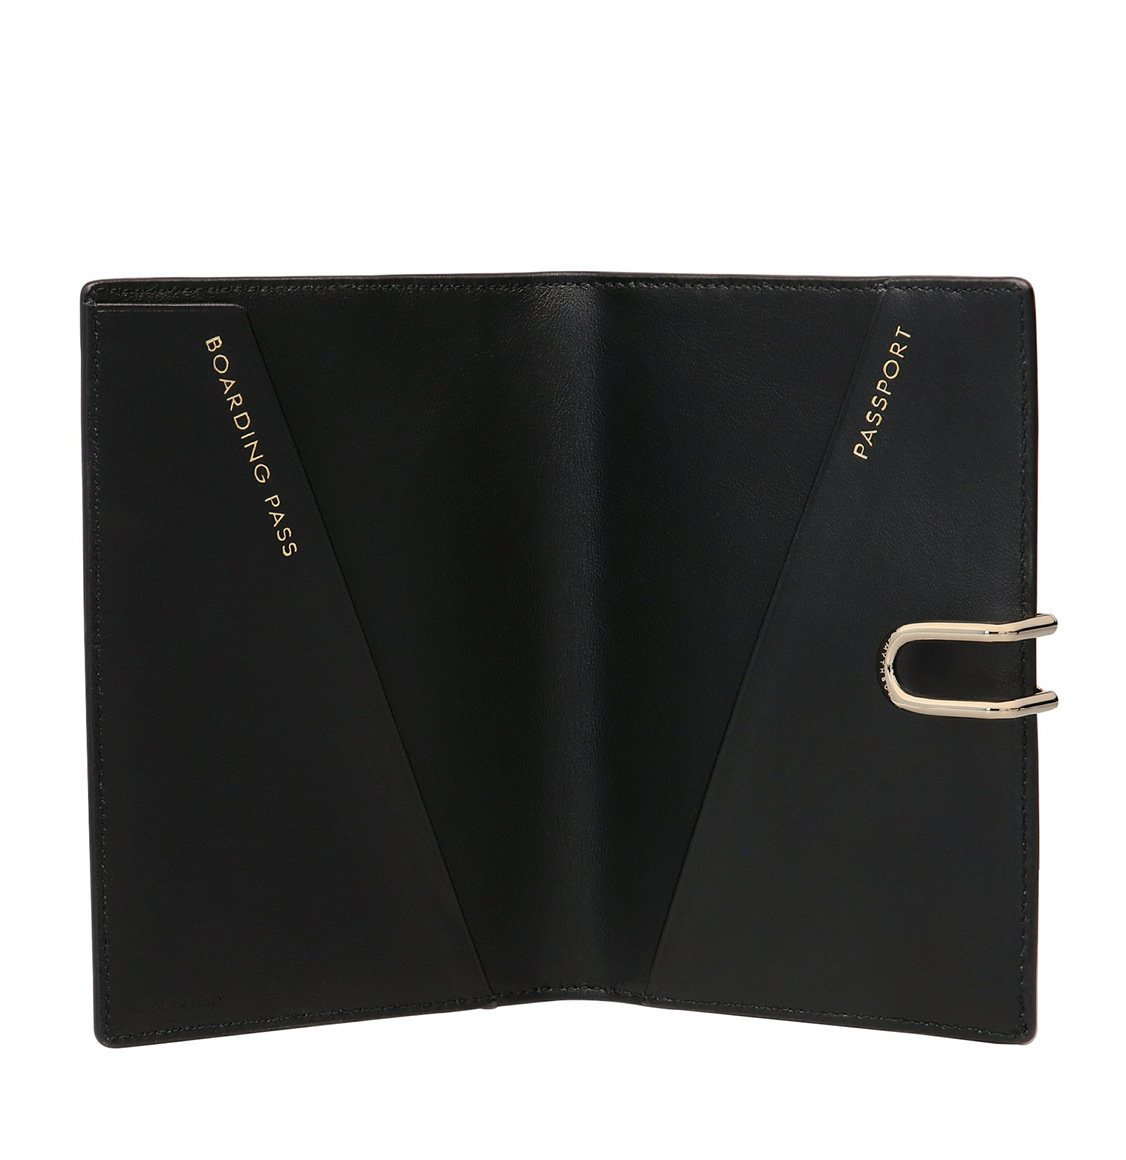 Smythson Panama Cross-Grain Leather Passport Cover Black